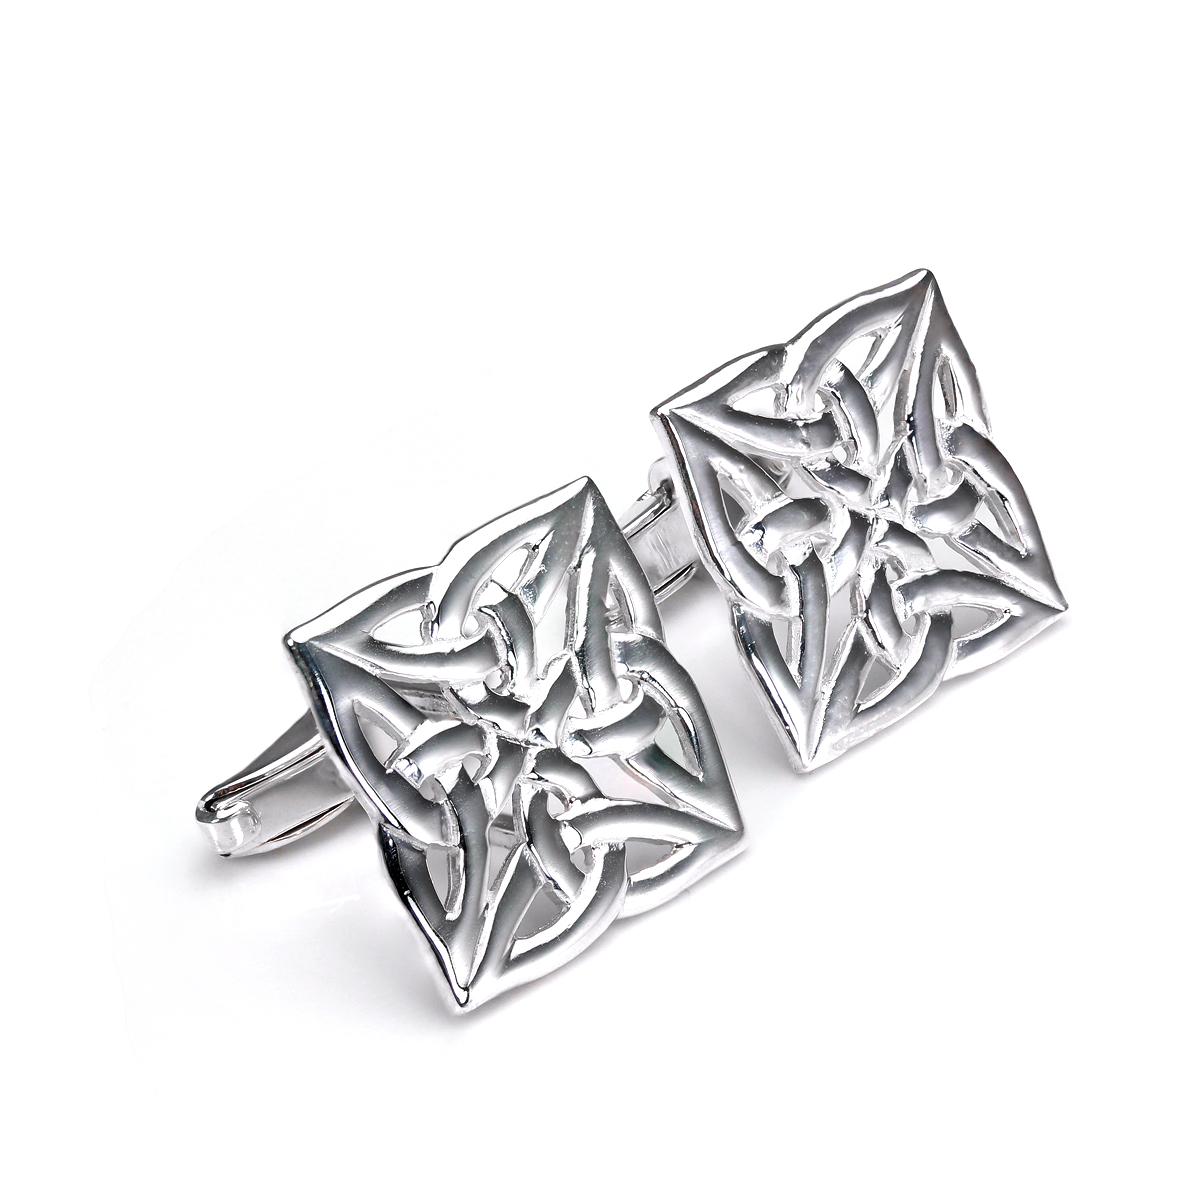 An image of Sterling Silver Celtic Weave Square Swivel Back Cufflinks